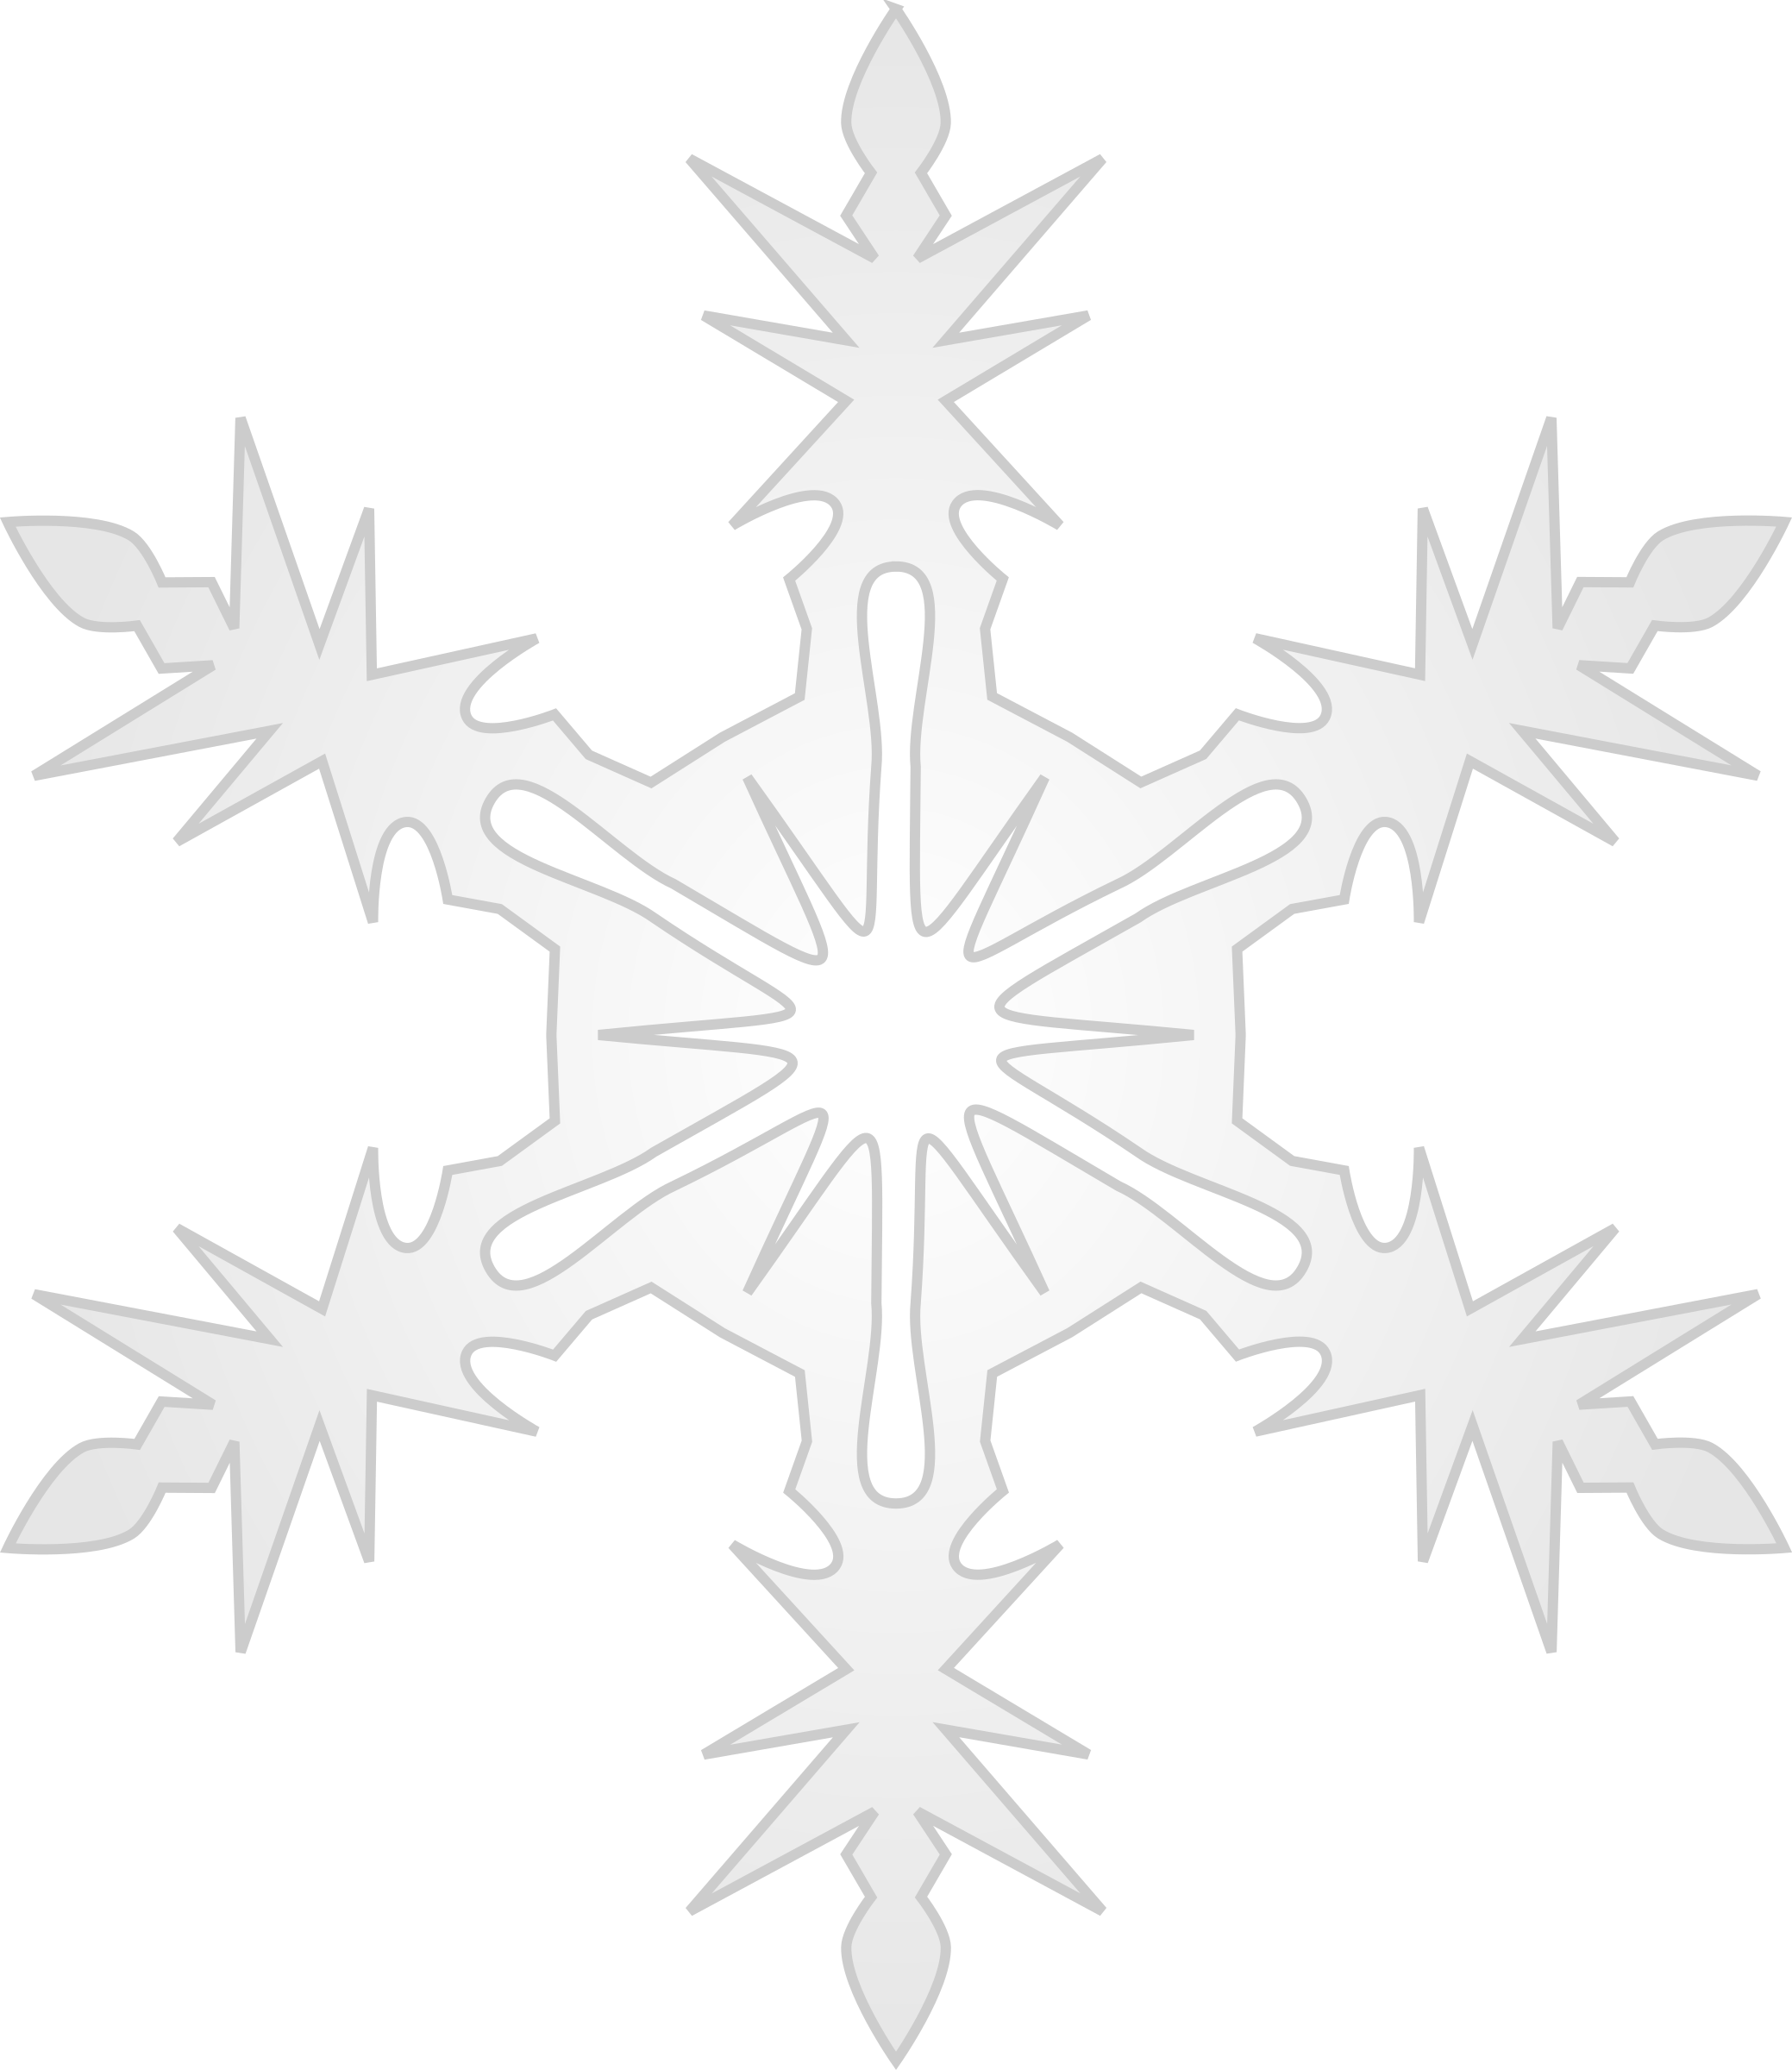 Snowflake 9 by Arvin61r58